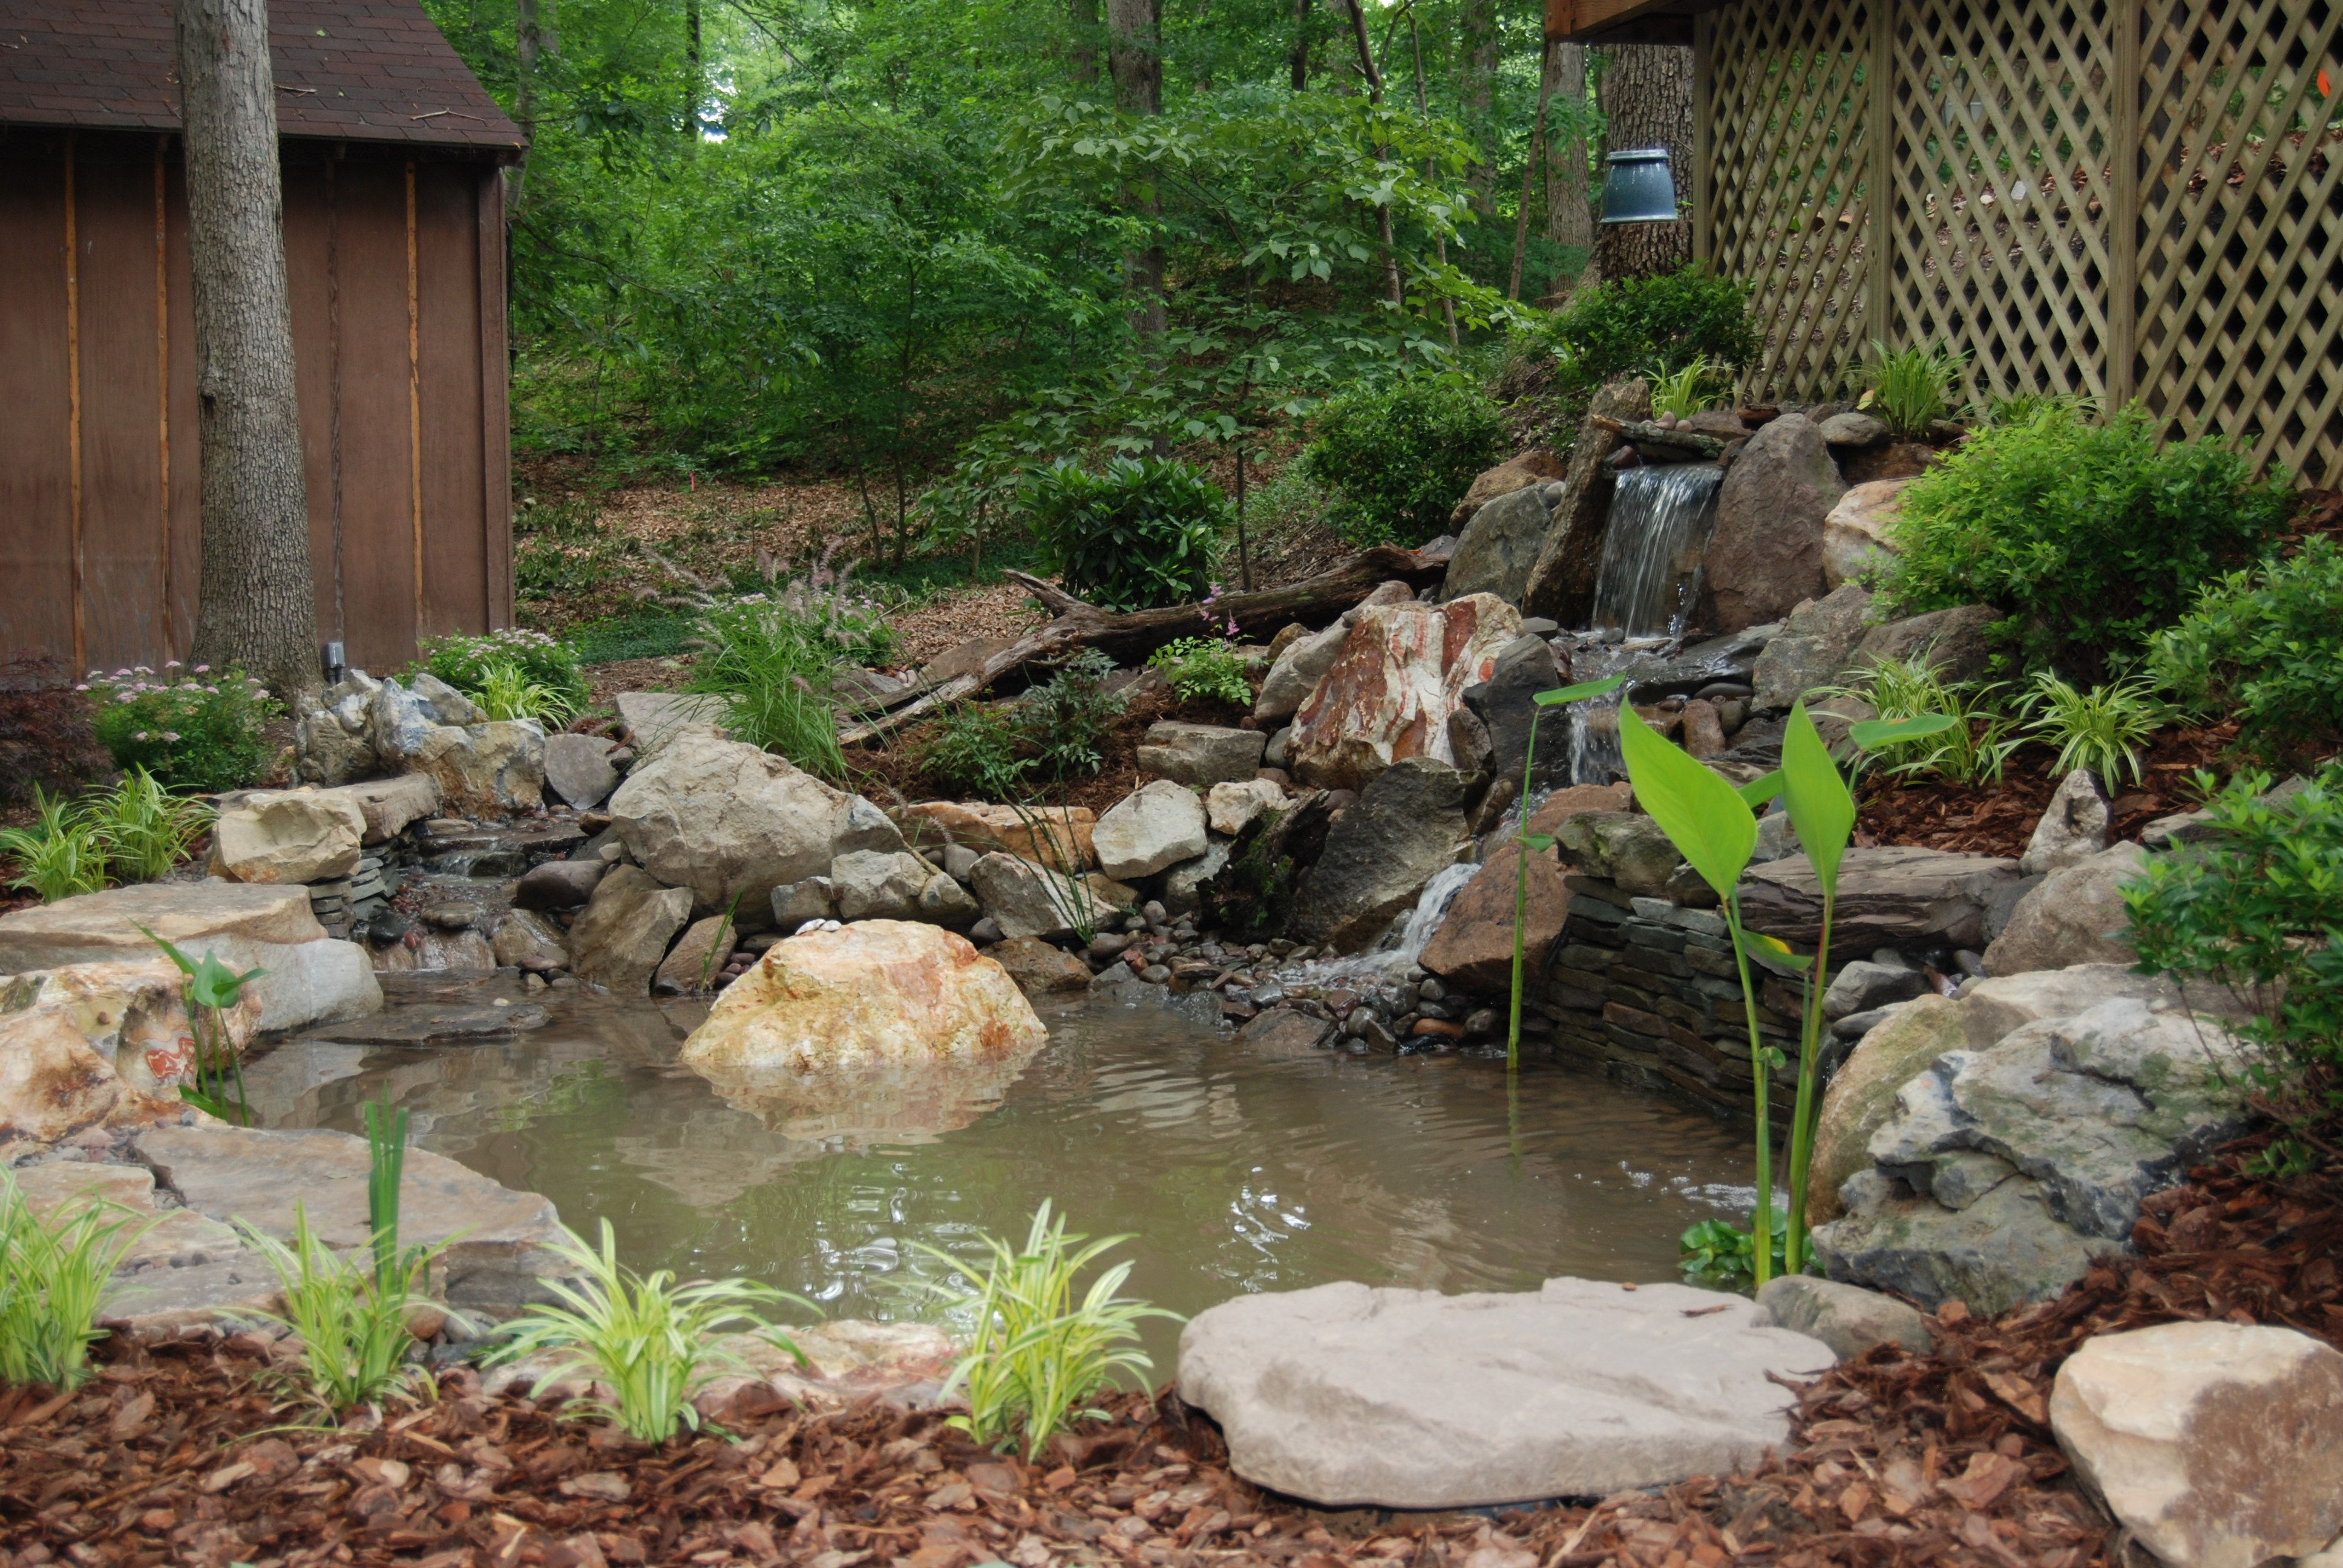 Garden Ponds Design Ideas create a peaceful haven in your yard with this garden pond and cedar bridge 17 Best Images About Pond Ideas On Gardens Small